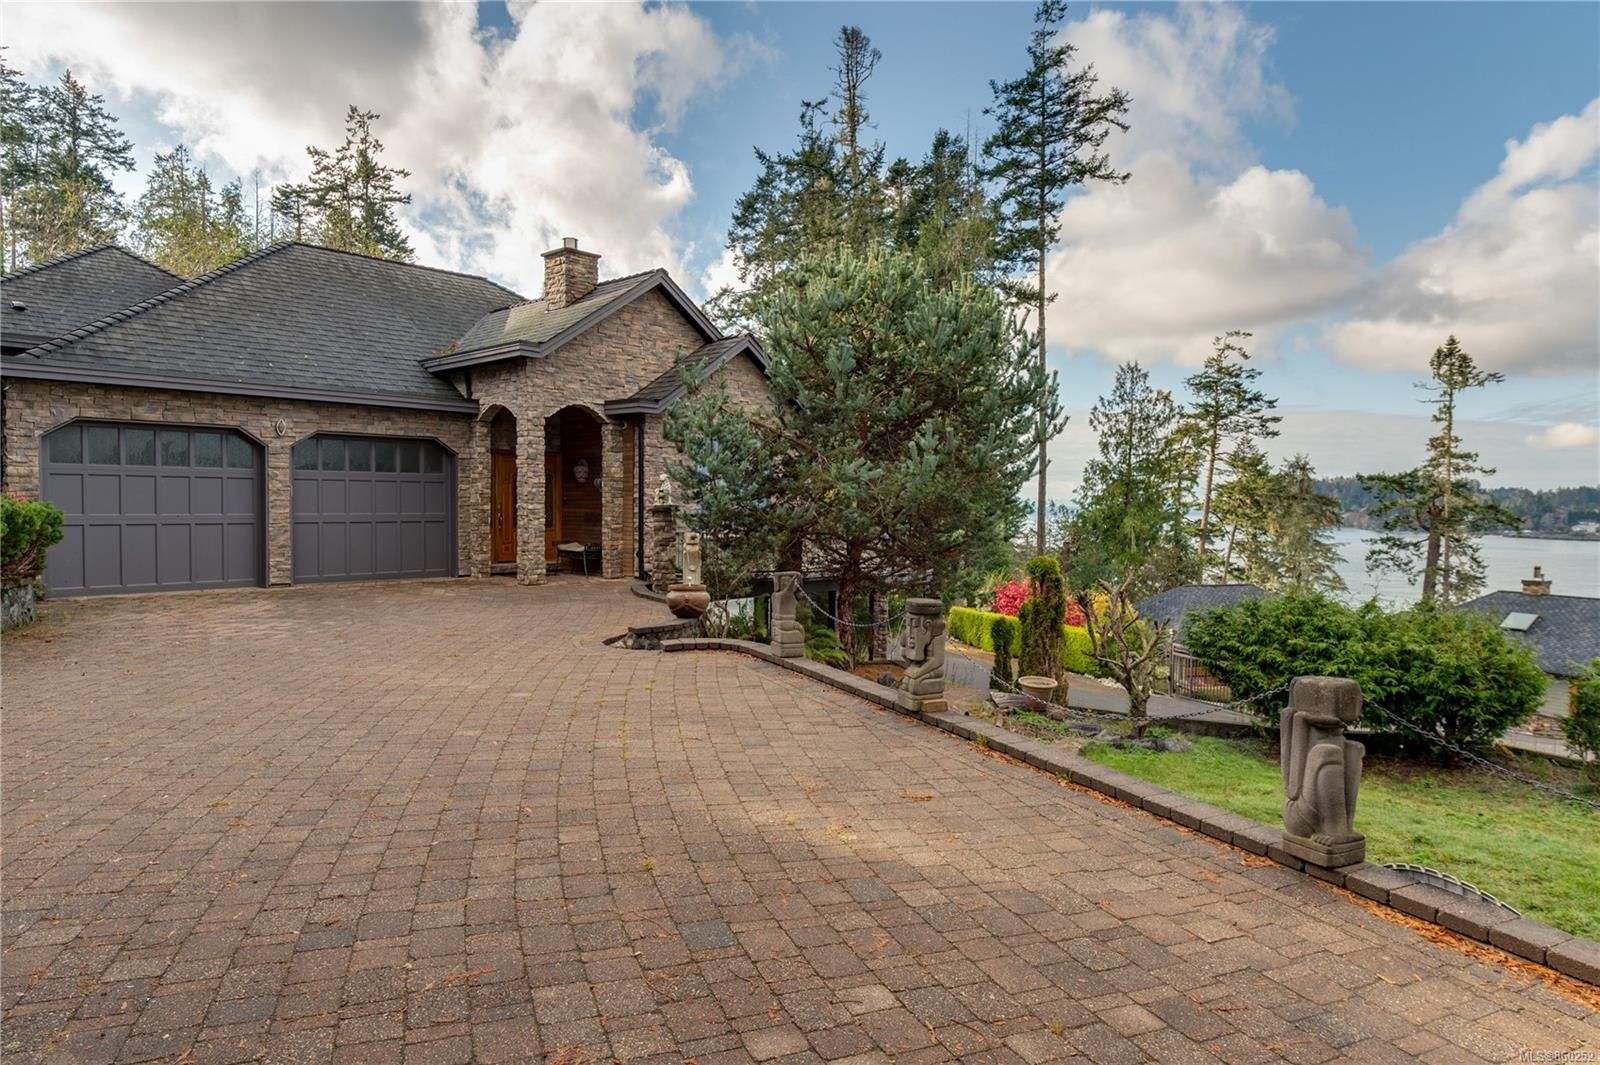 Main Photo: 7100 Sea Cliff Rd in : Sk Silver Spray House for sale (Sooke)  : MLS®# 860252